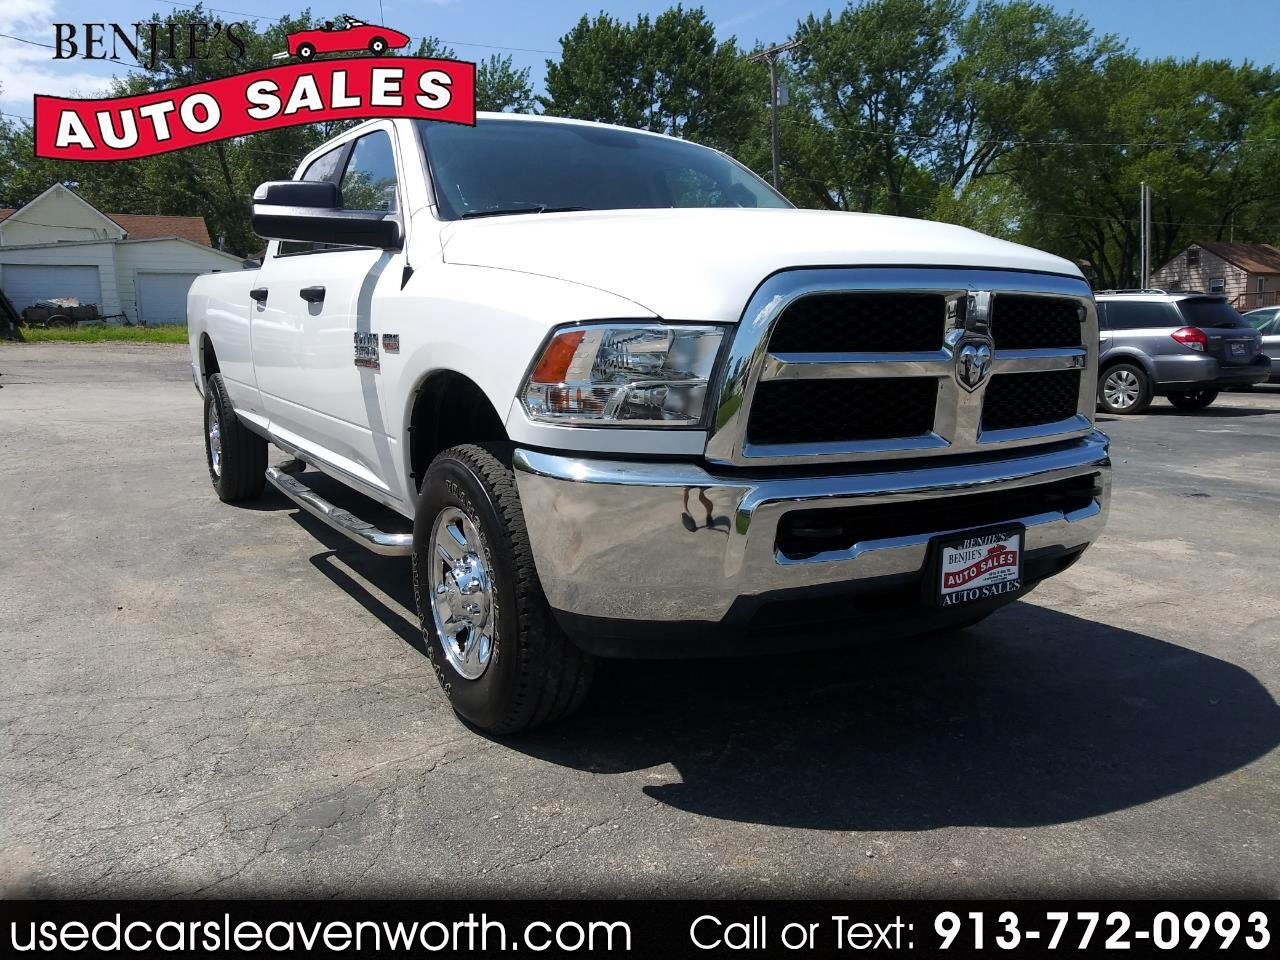 2018 Dodge Ram Pickup 3500 SLT Quad Cab Long Bed 4WD